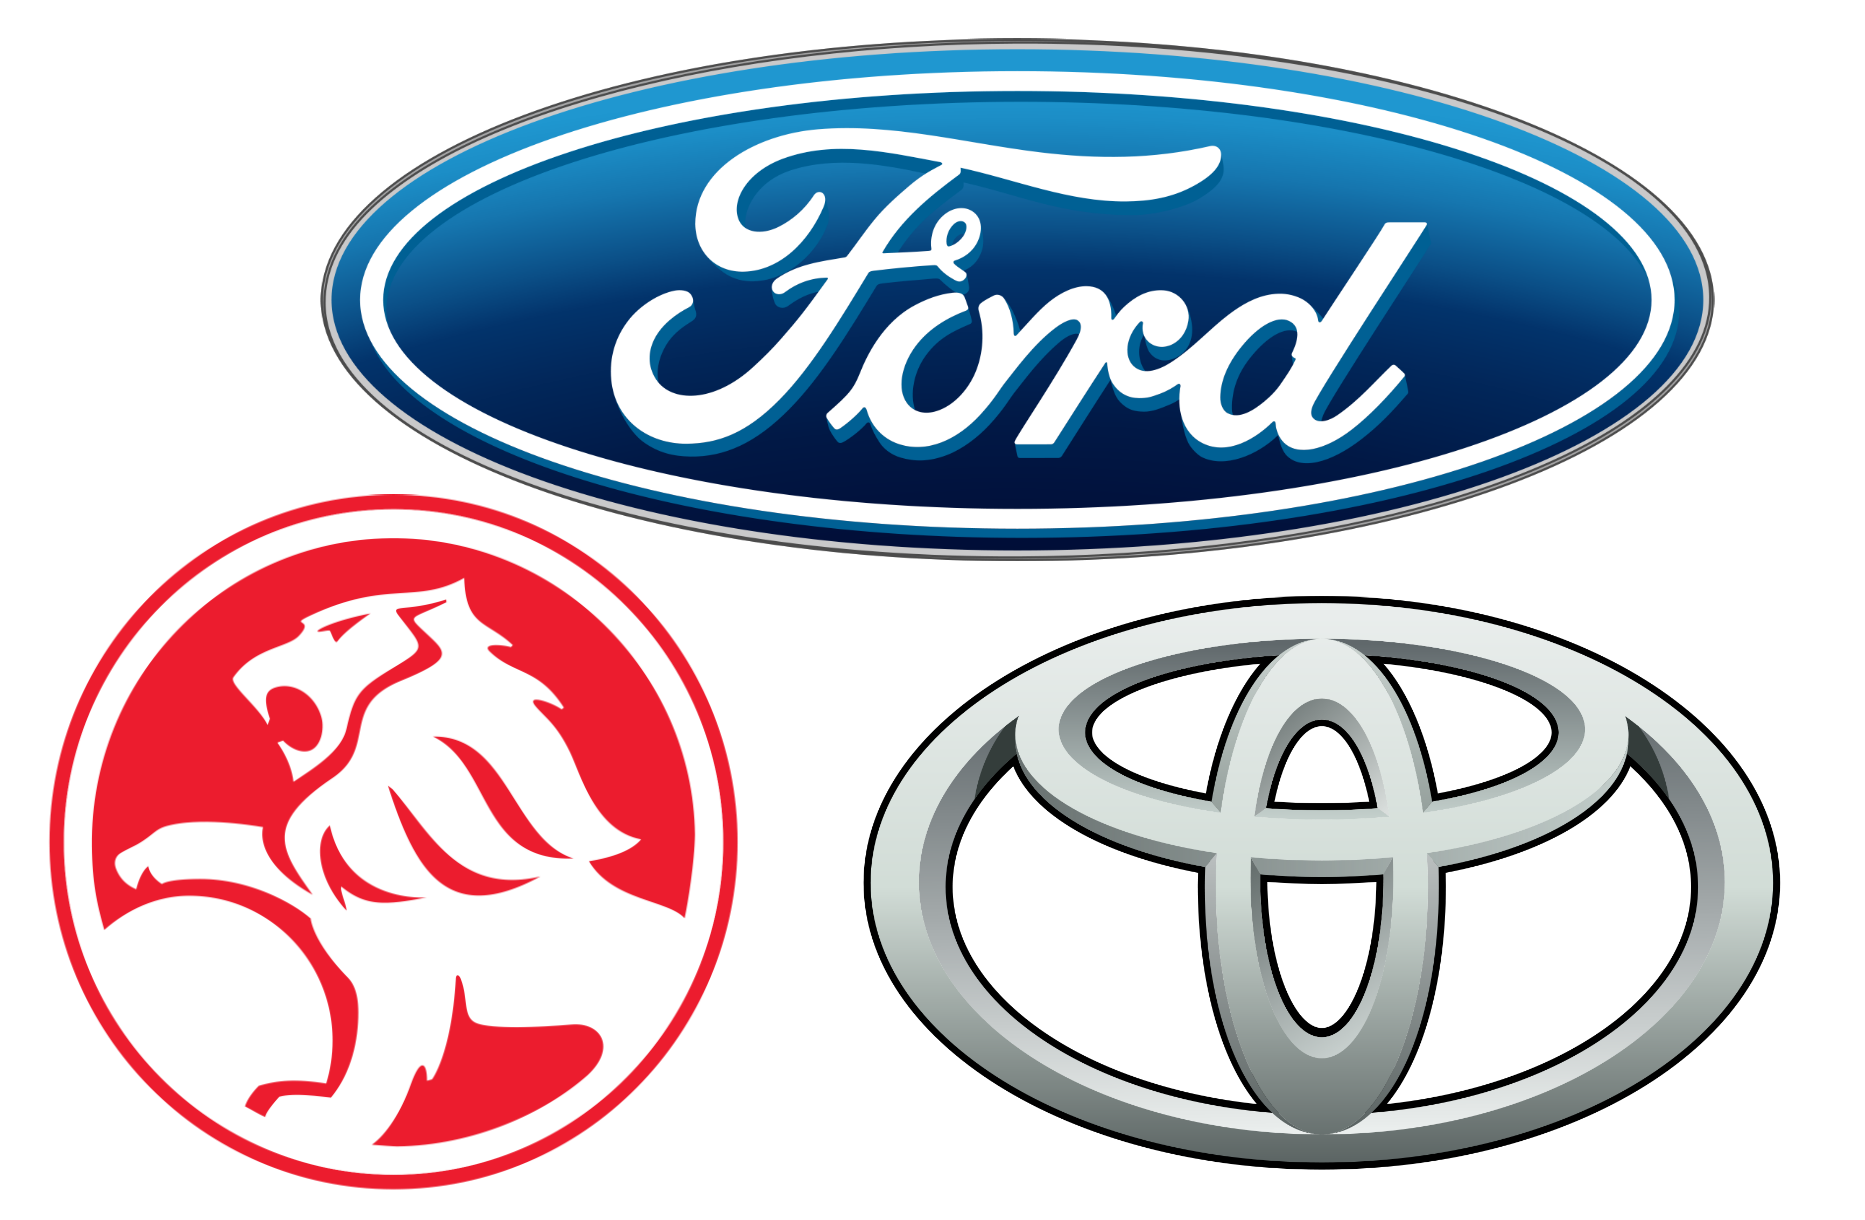 Australian Car Brands, Companies and Manufacturers | Car ...